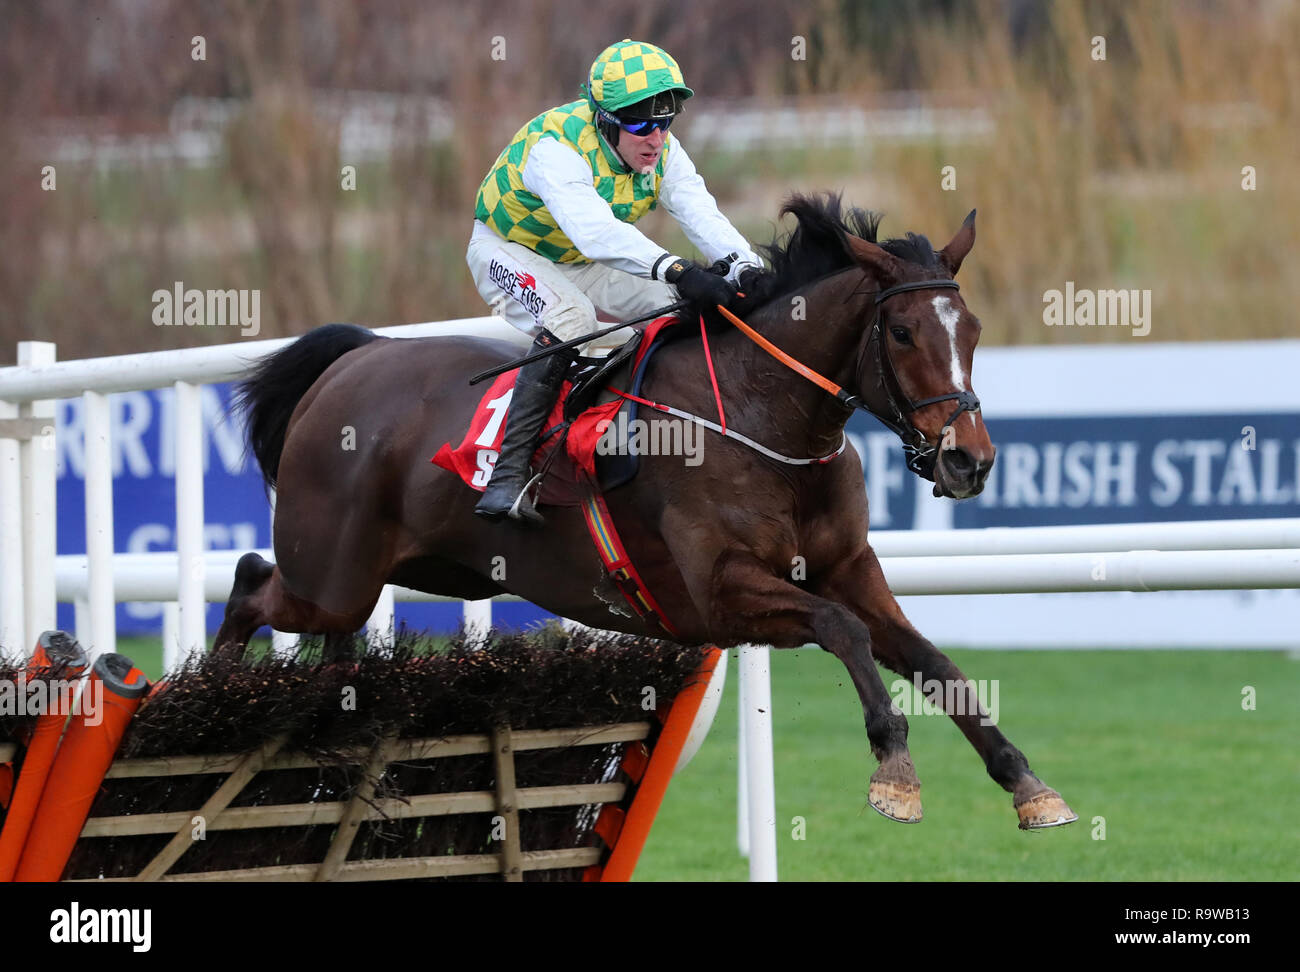 The Church Gate Ridden By Robbie Power Jumps The Last Before Going To Win The Irish Daily Star Christmas Handicap Hurdle During Day Three Of The Leopardstown Christmas Festival At Leopardstown Racecourse